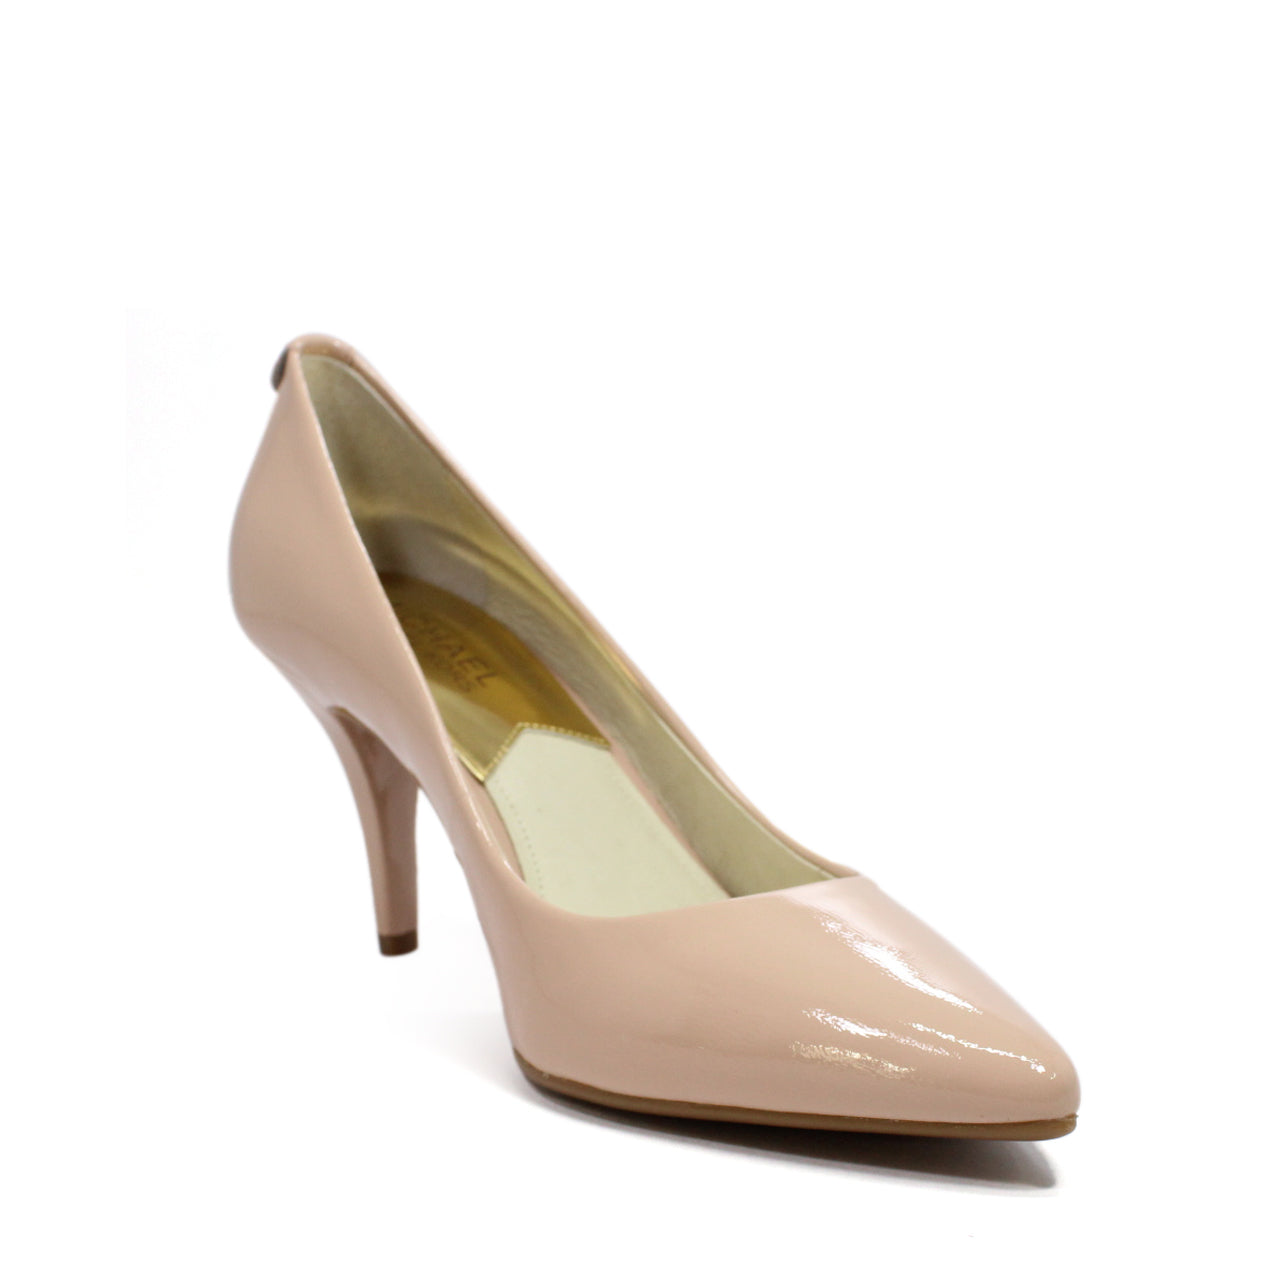 Michael Kors Decollete Flex Patent Leather Mid-Heel Pumps